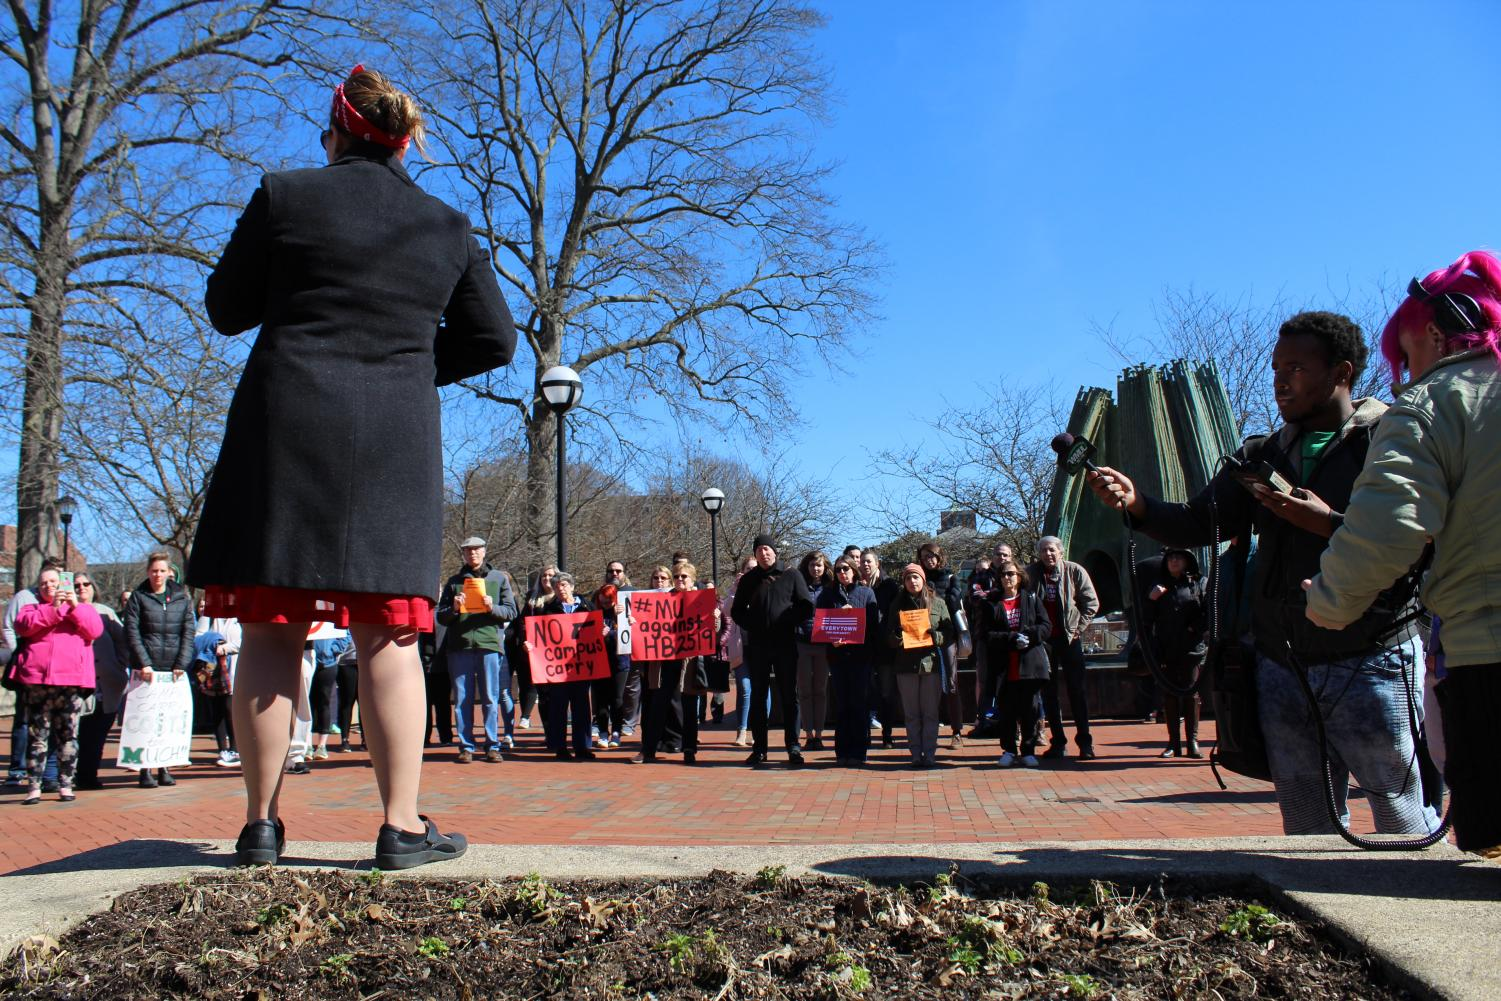 Marshall University faculty and students gather to protest Campus Carry Bill, Monday, Feb. 26 at Memorial Fountain.